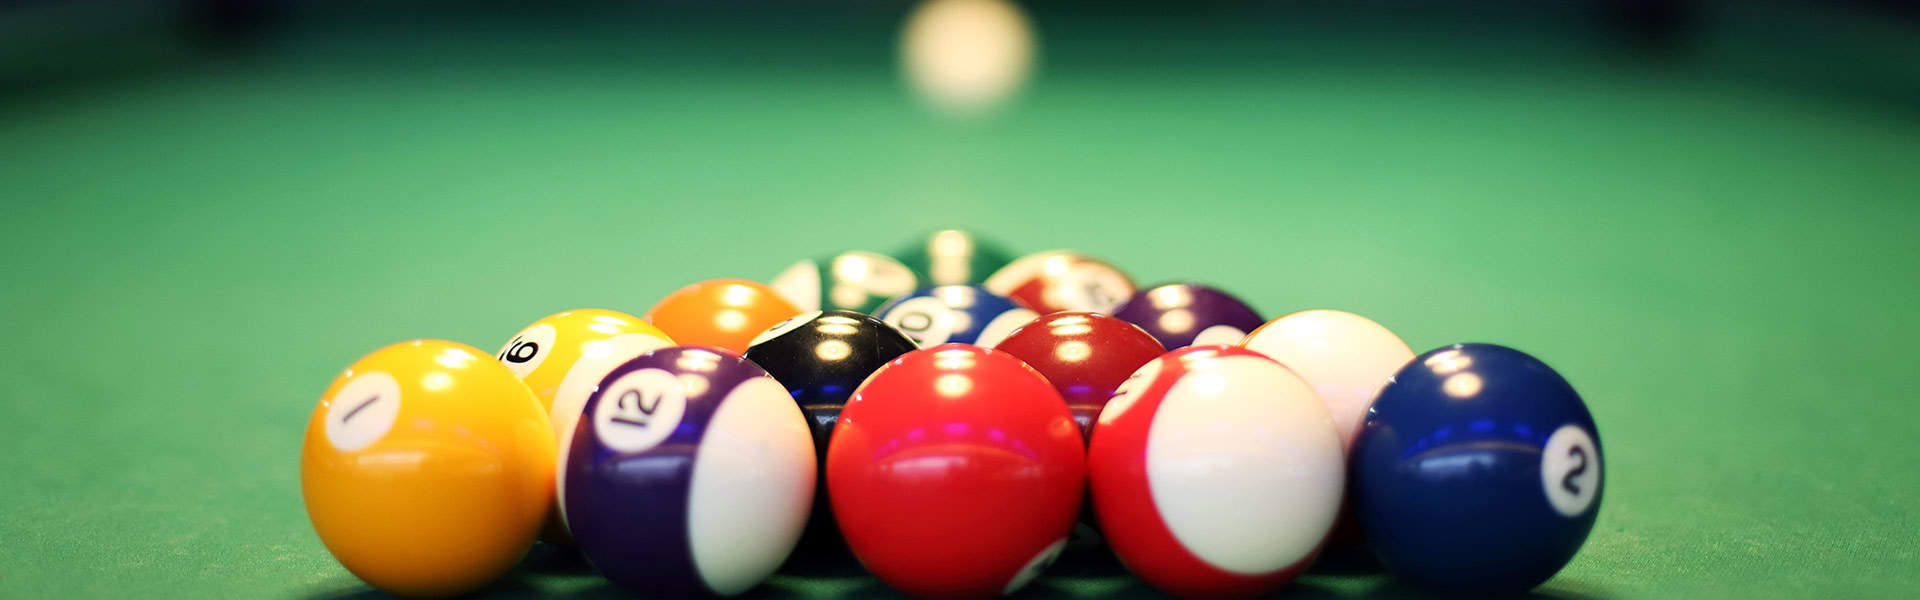 Pool Table Restoration And Moving In Northern Arizona - Pool table resurfacing